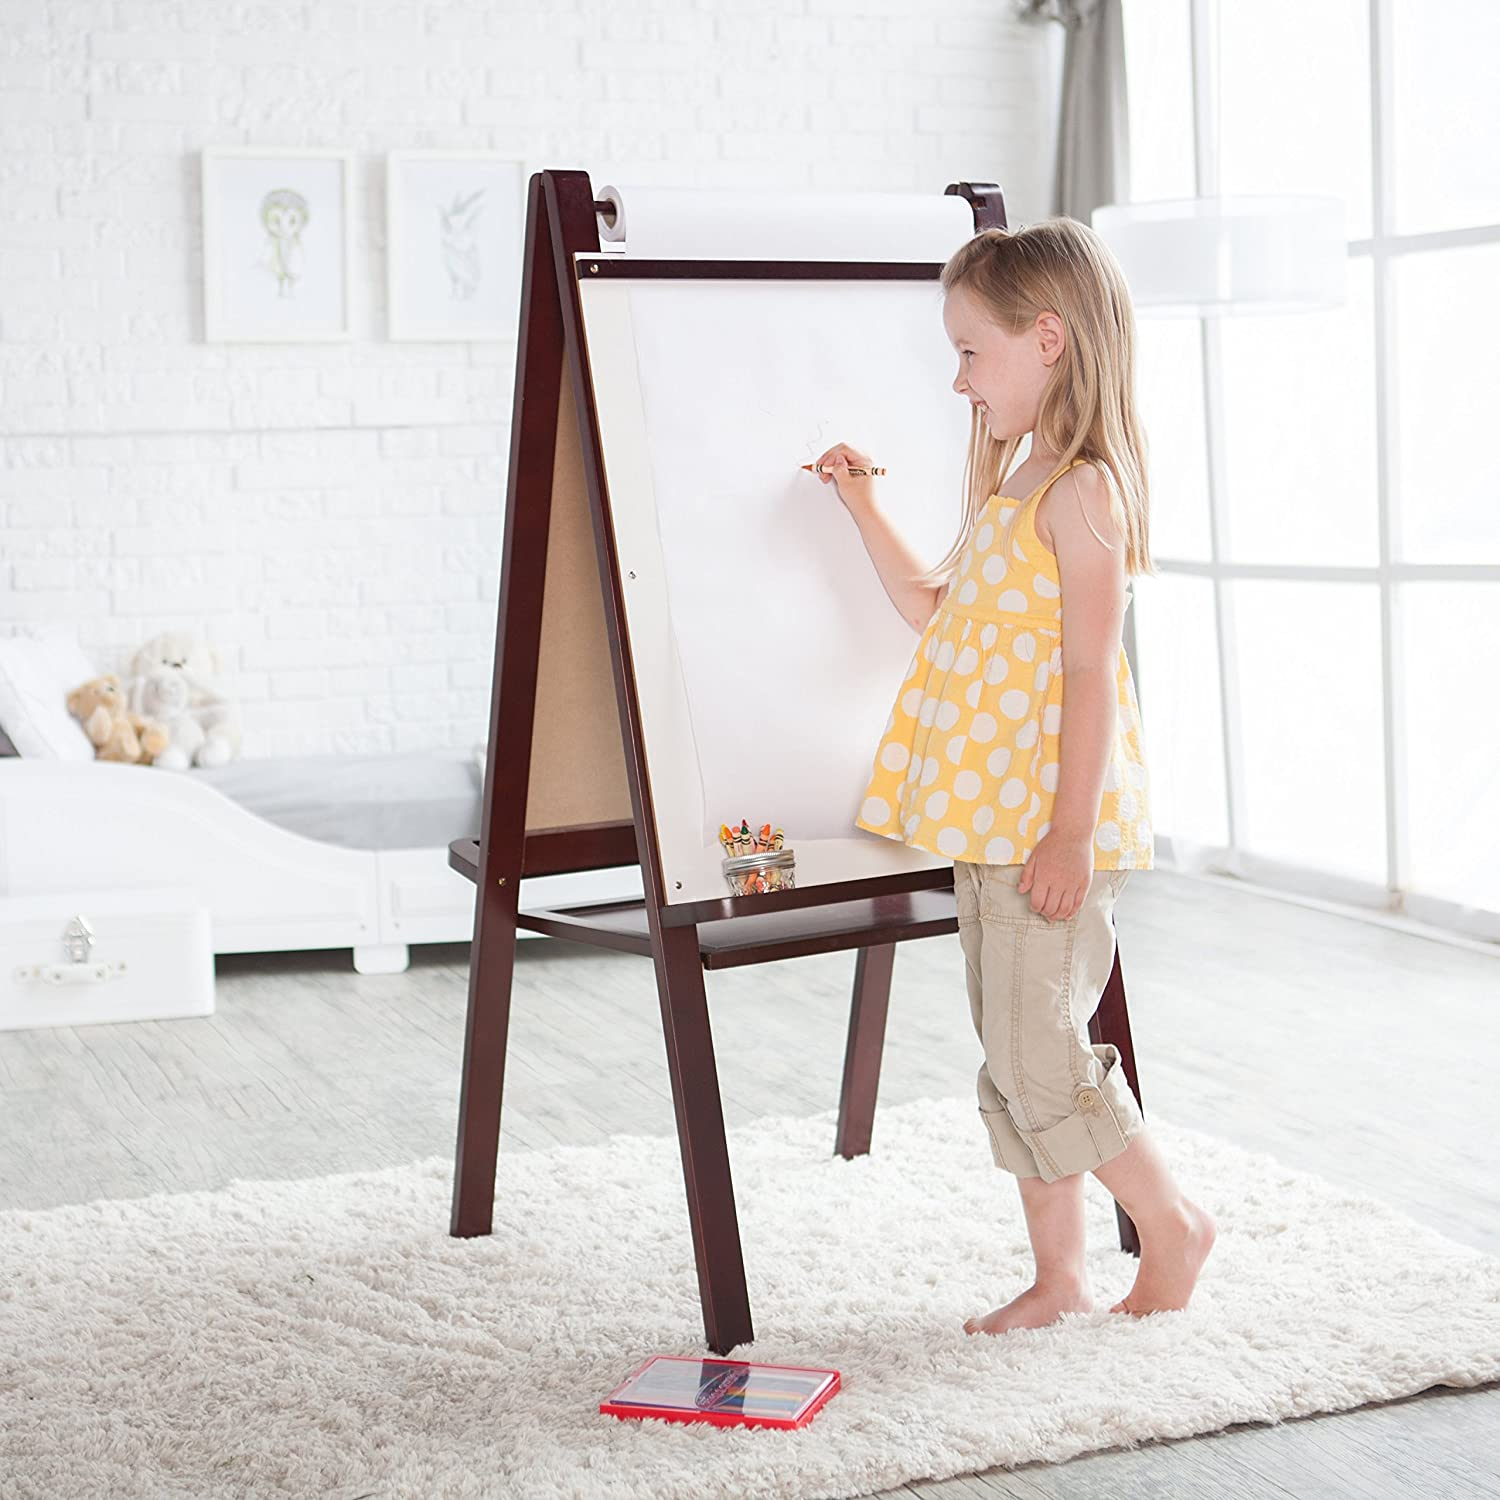 Painting Paper 18 inch by 200 FEET Drawing Paper Perfect for Wall Art Kraft Art /& Construction Paper Made in USA Paper Roll for Kids Easel /& Wrapping Paper White Arts and Crafts Paper Roll